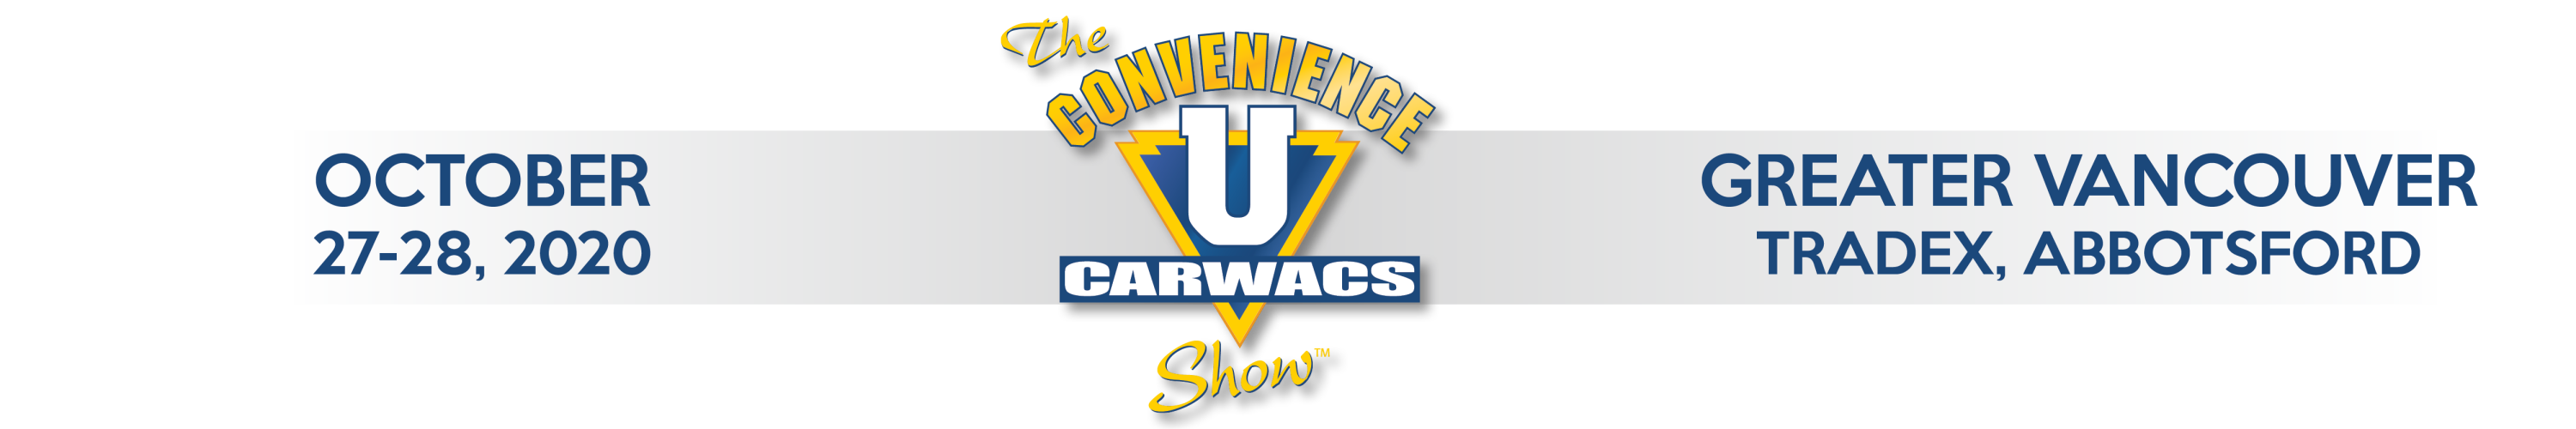 The Convenience U CARWACS Show West 2020